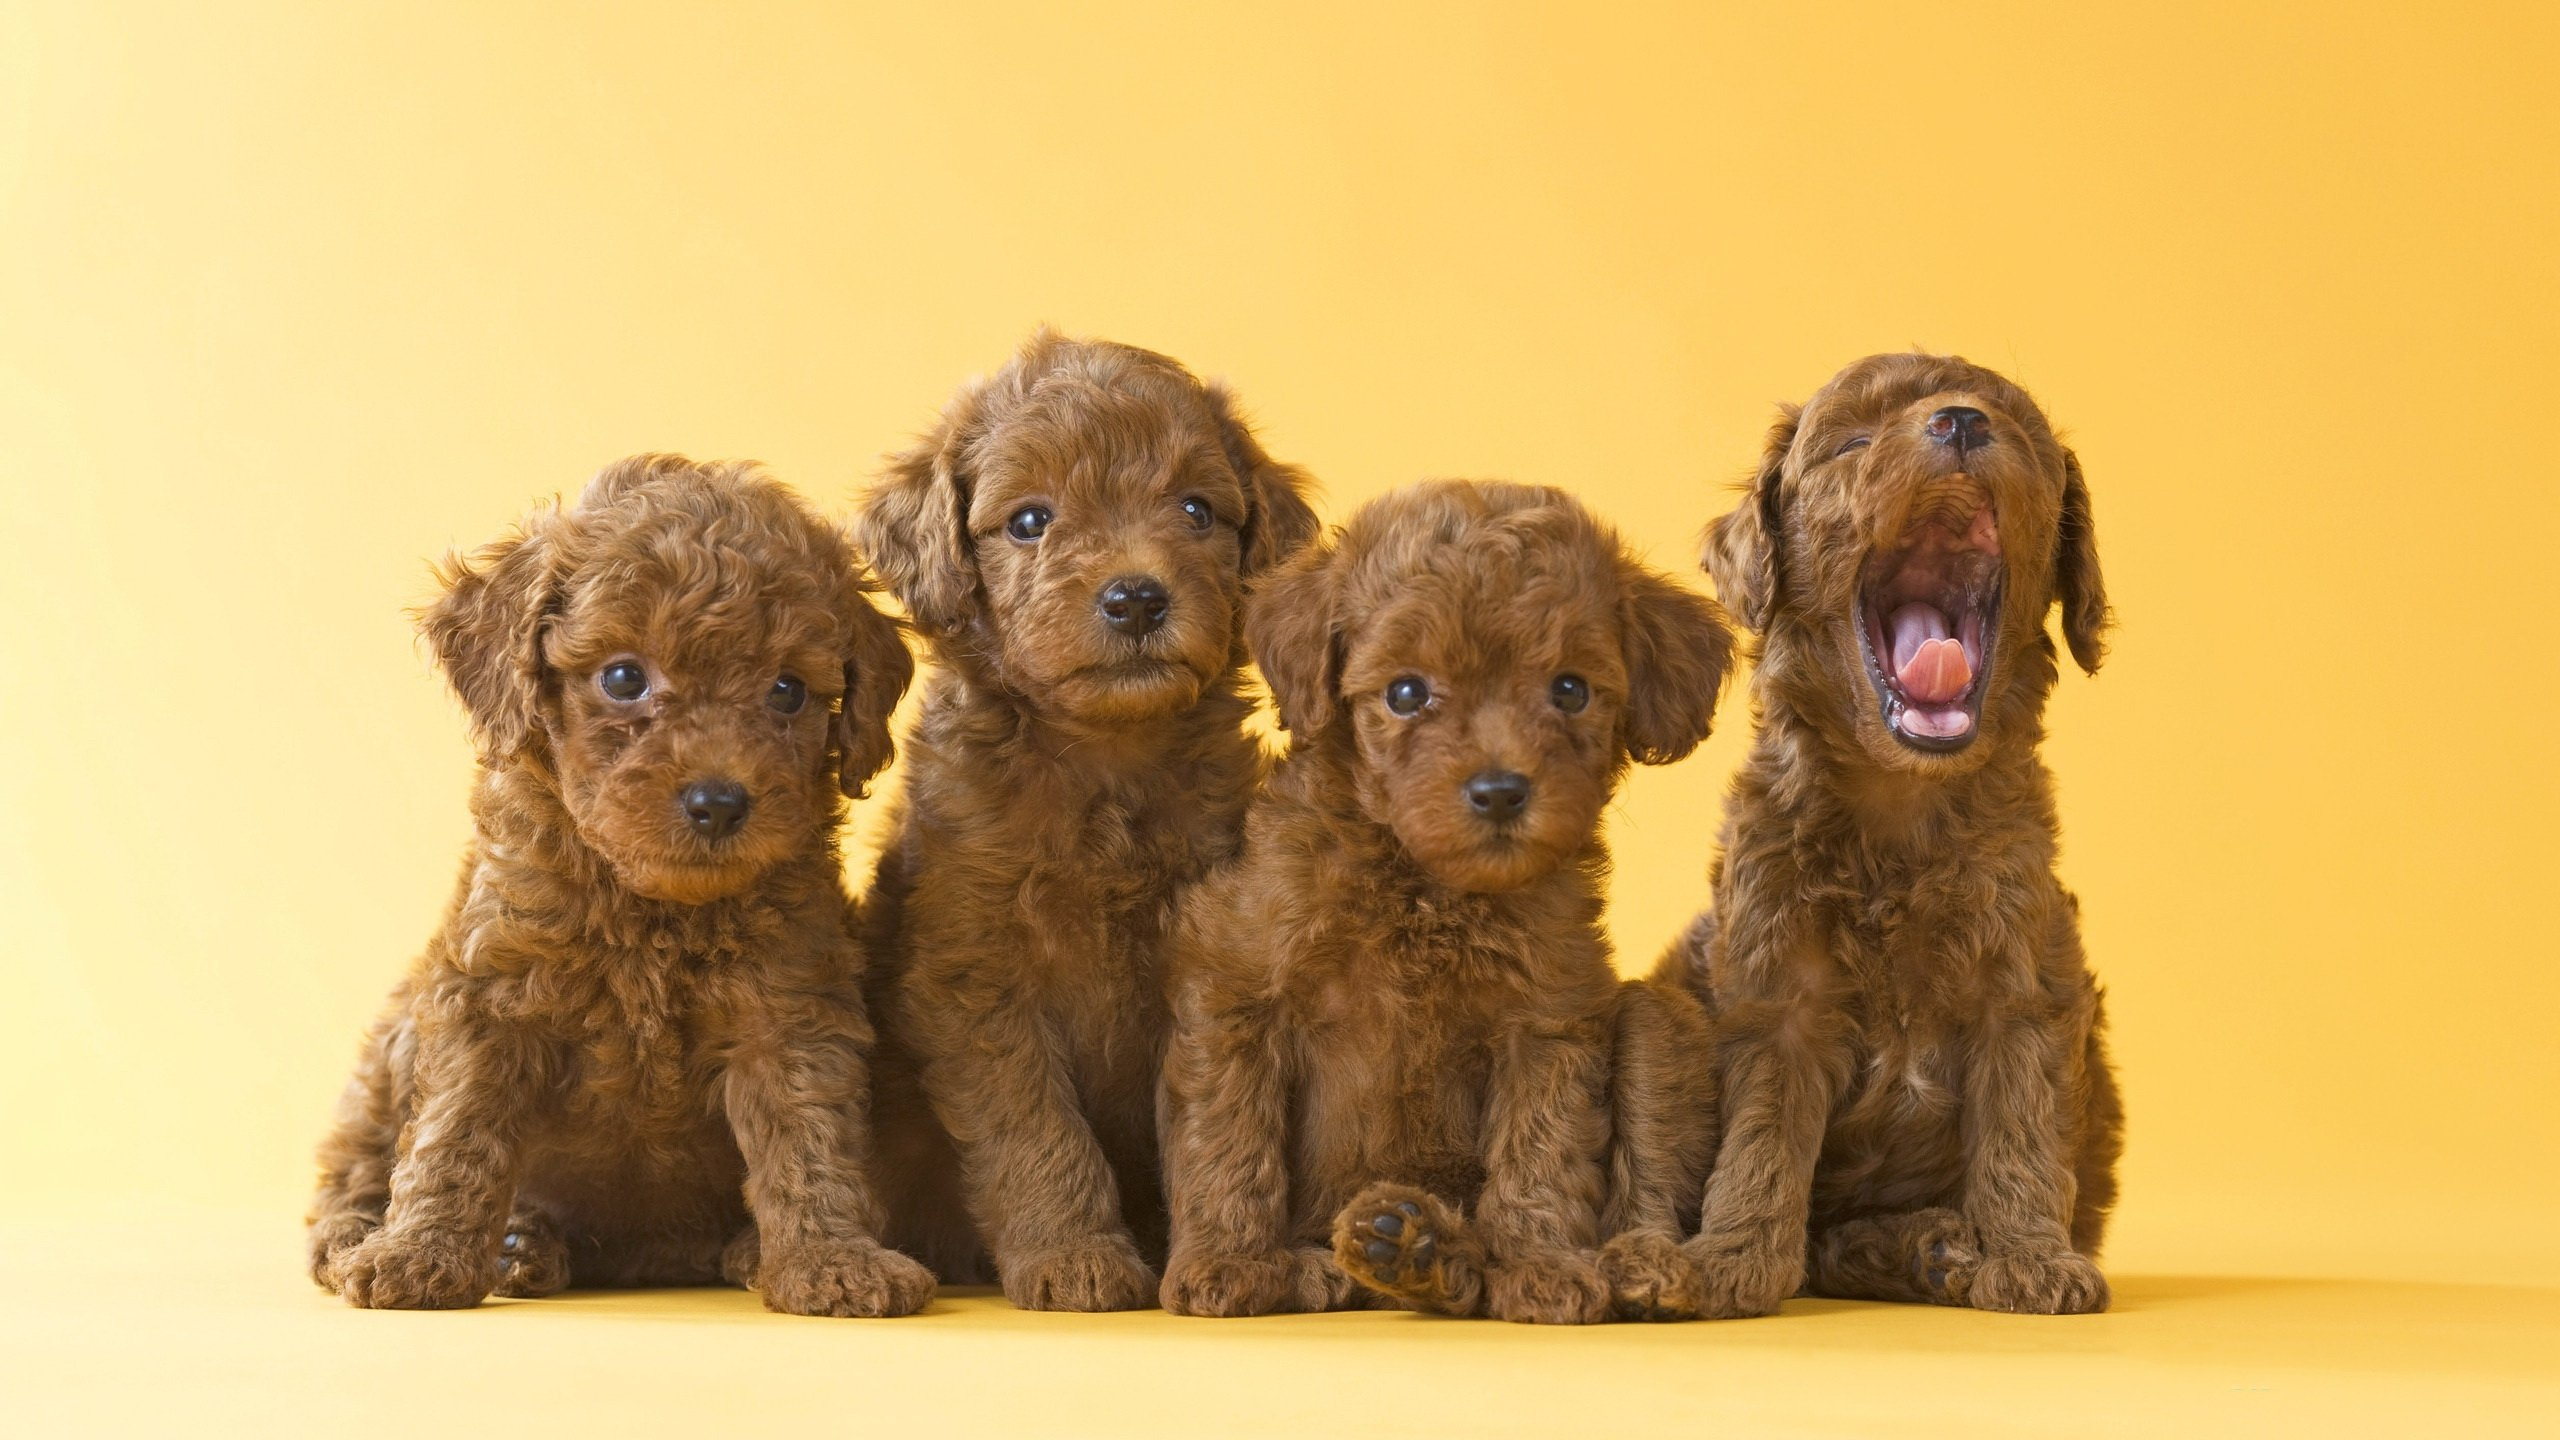 Free download Puppy wallpaper ID:46760 hd 2560x1440 for PC